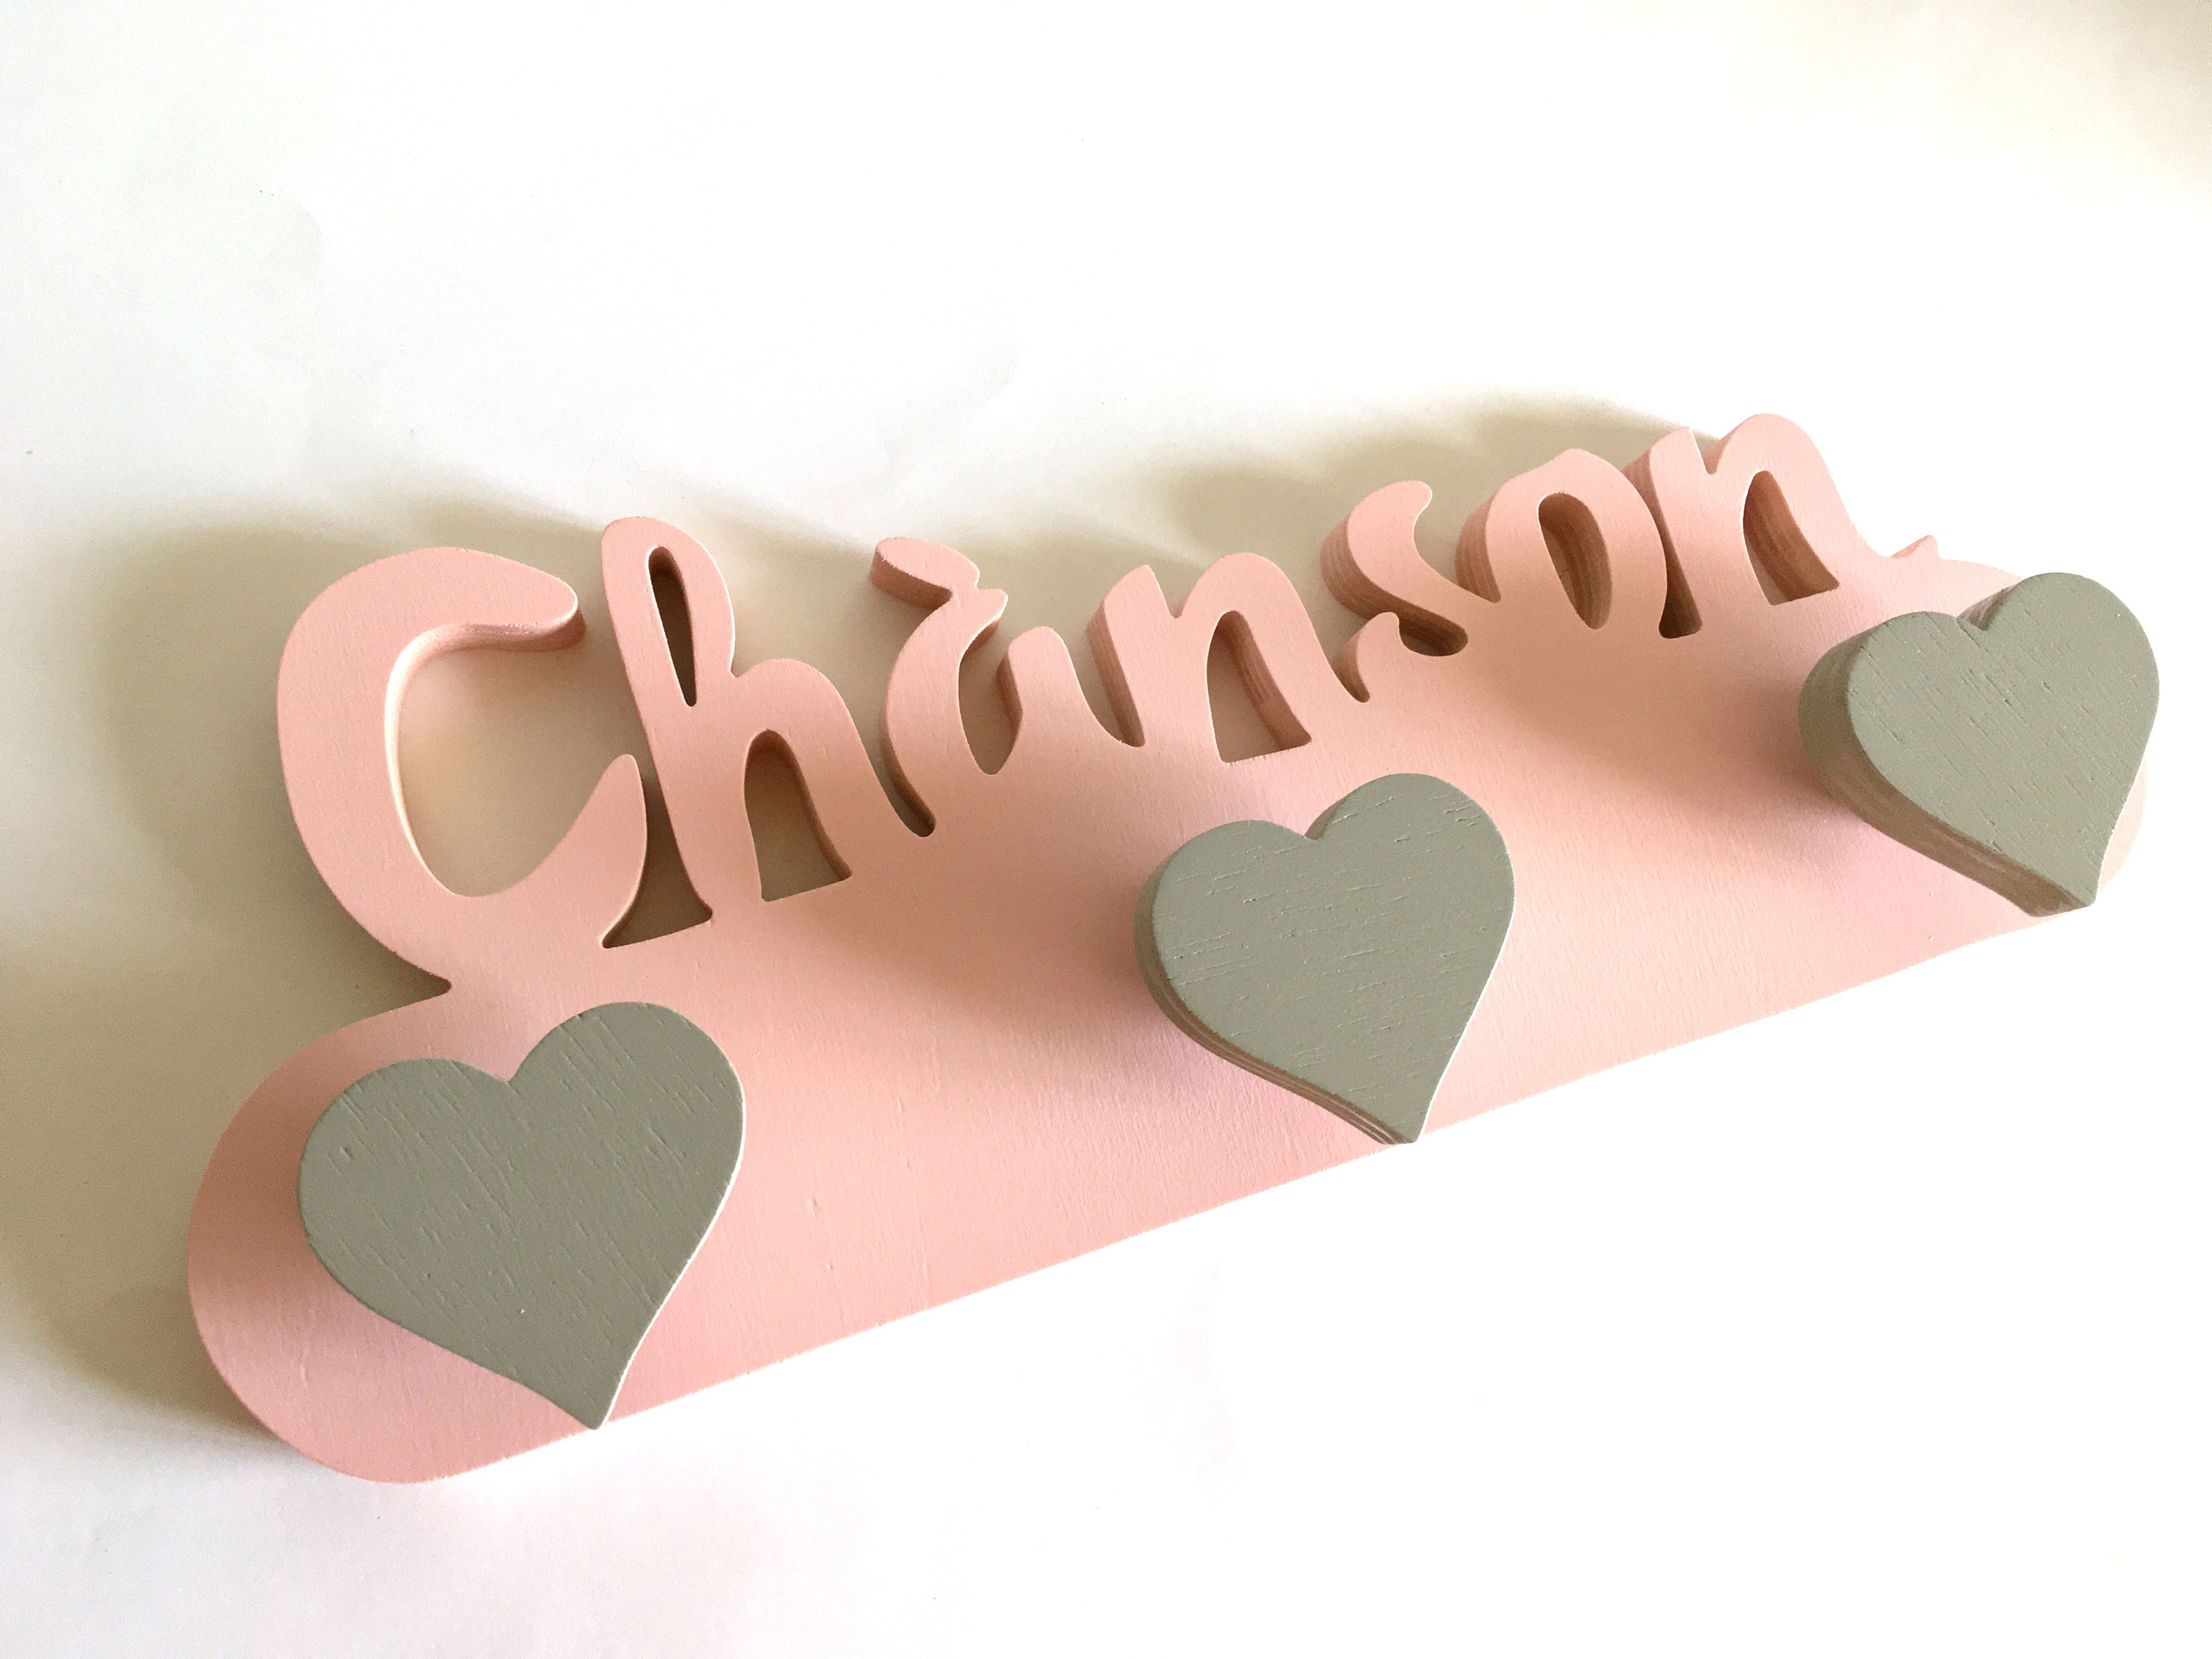 Wall Coat Rack Wooden Name Personalized Children S Decoration Childrens Decor Wooden Names Coat Rack Wall